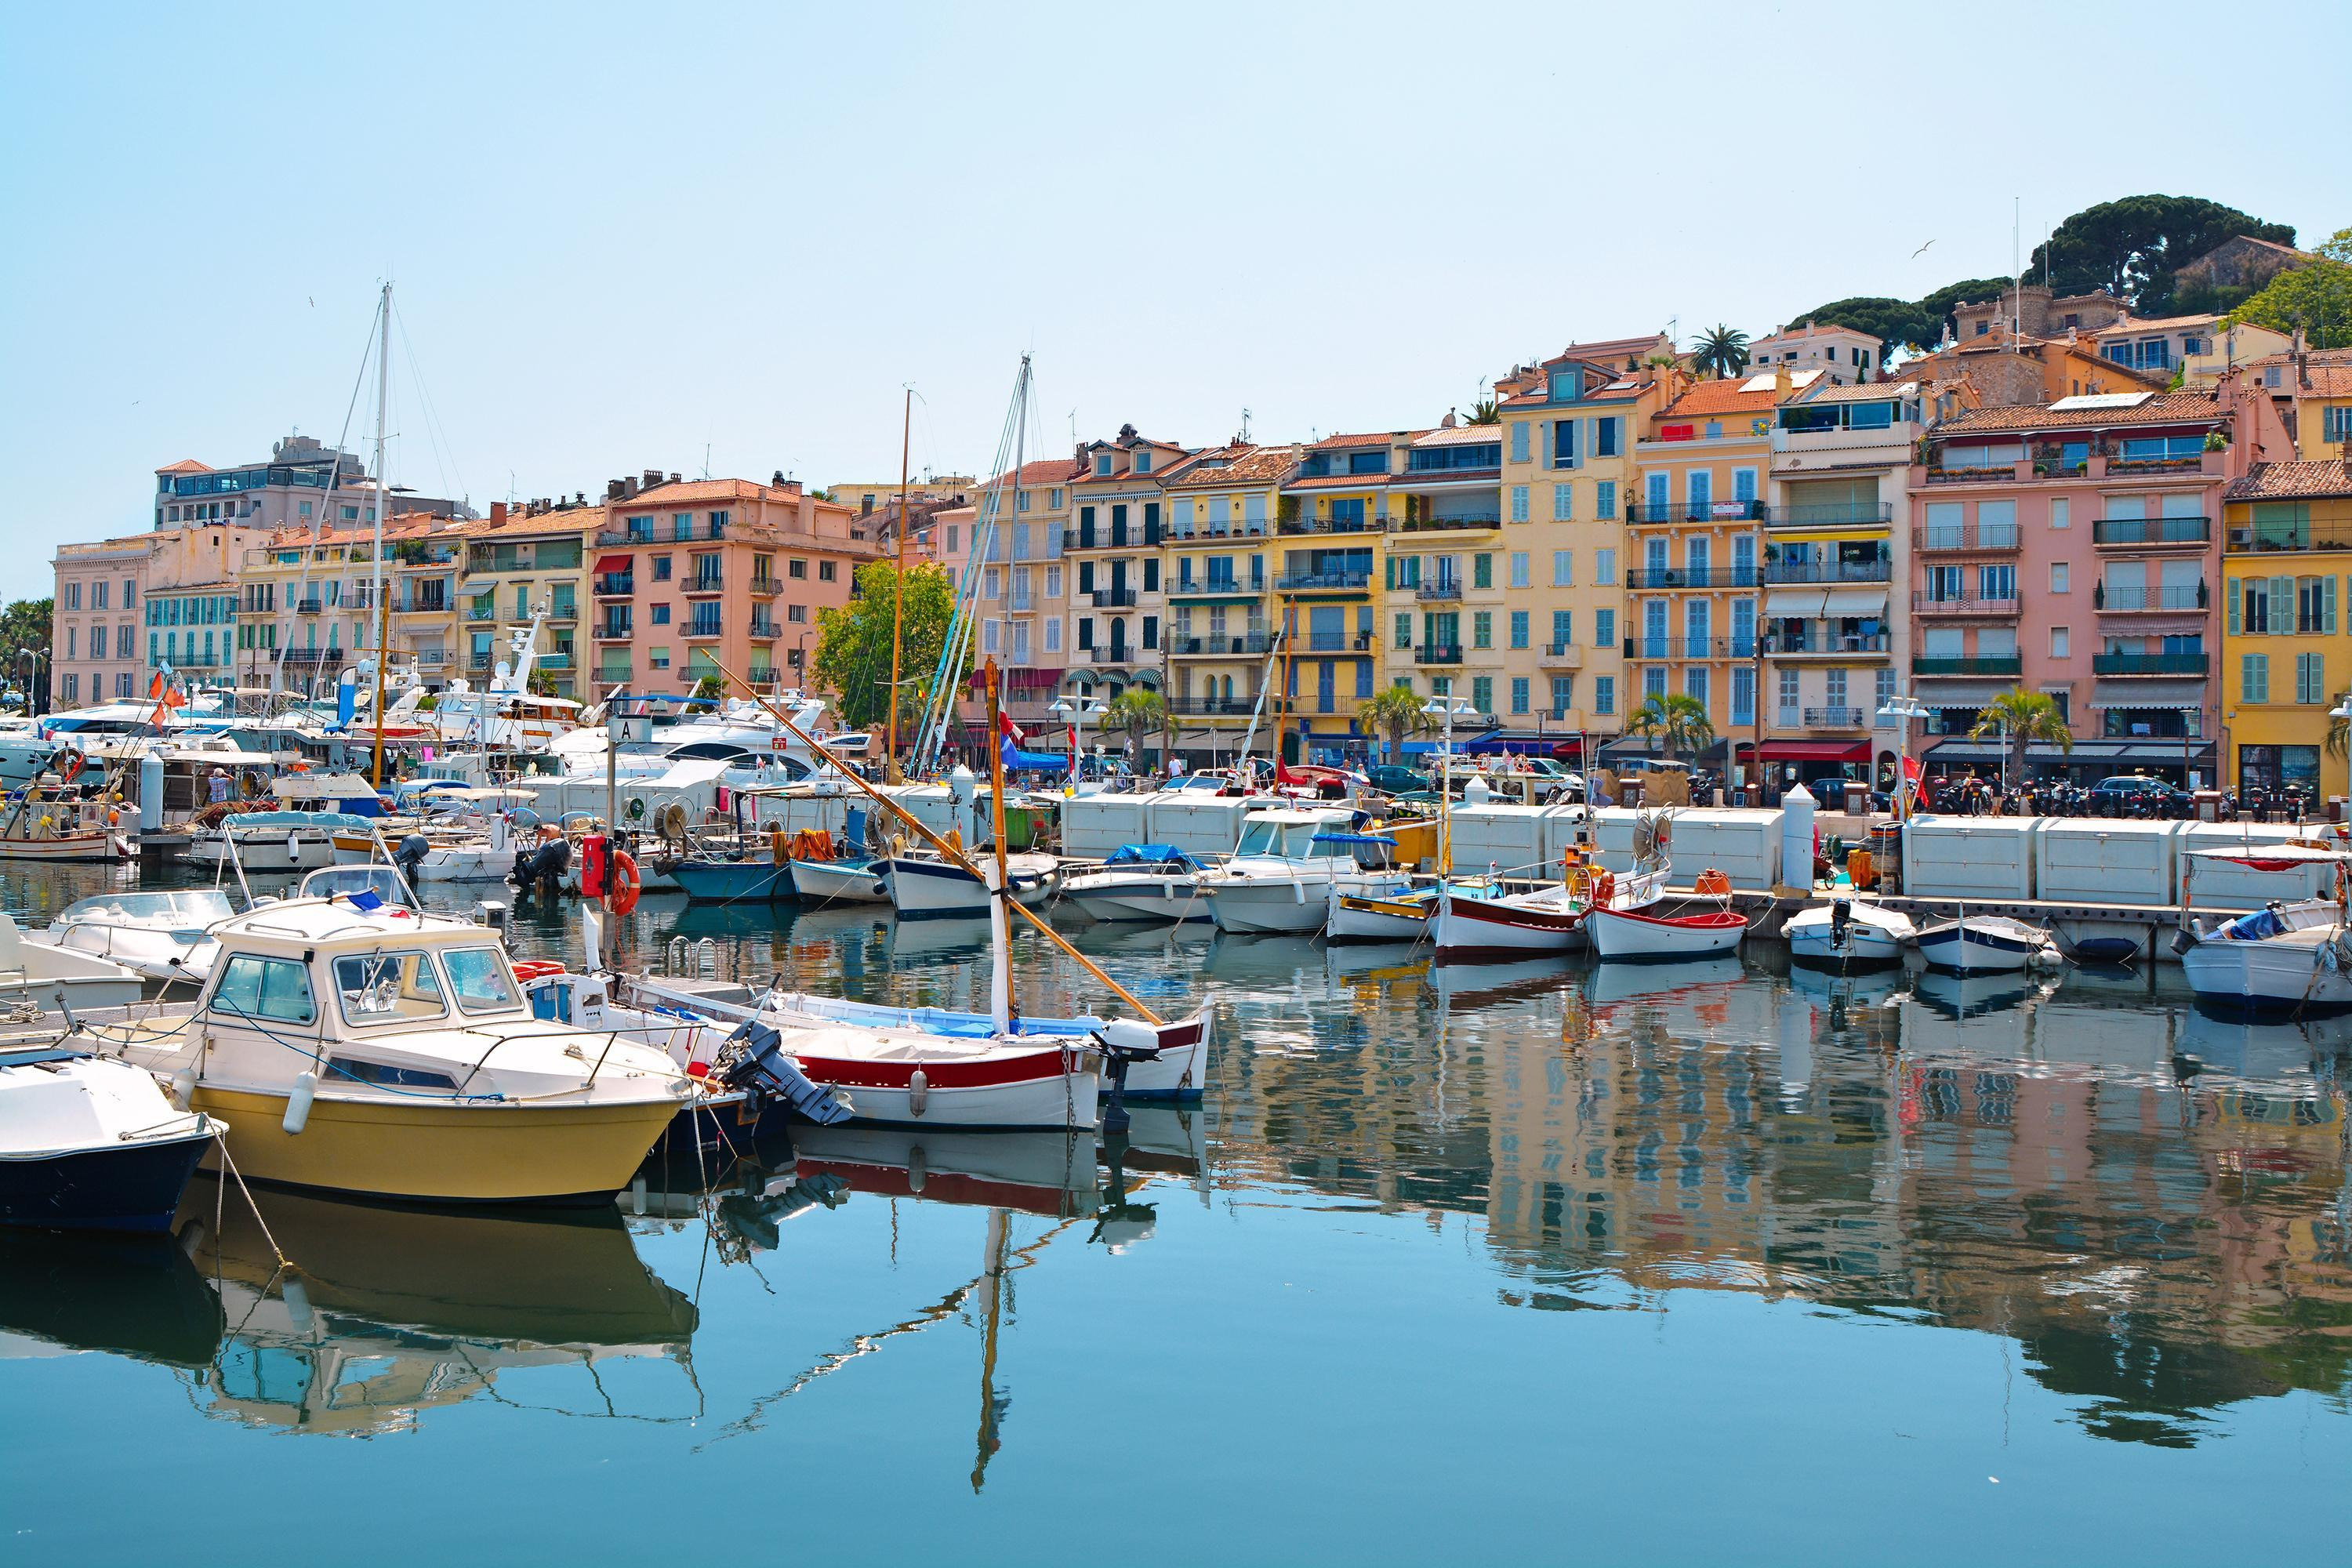 How to Spend 1 Day in Cannes